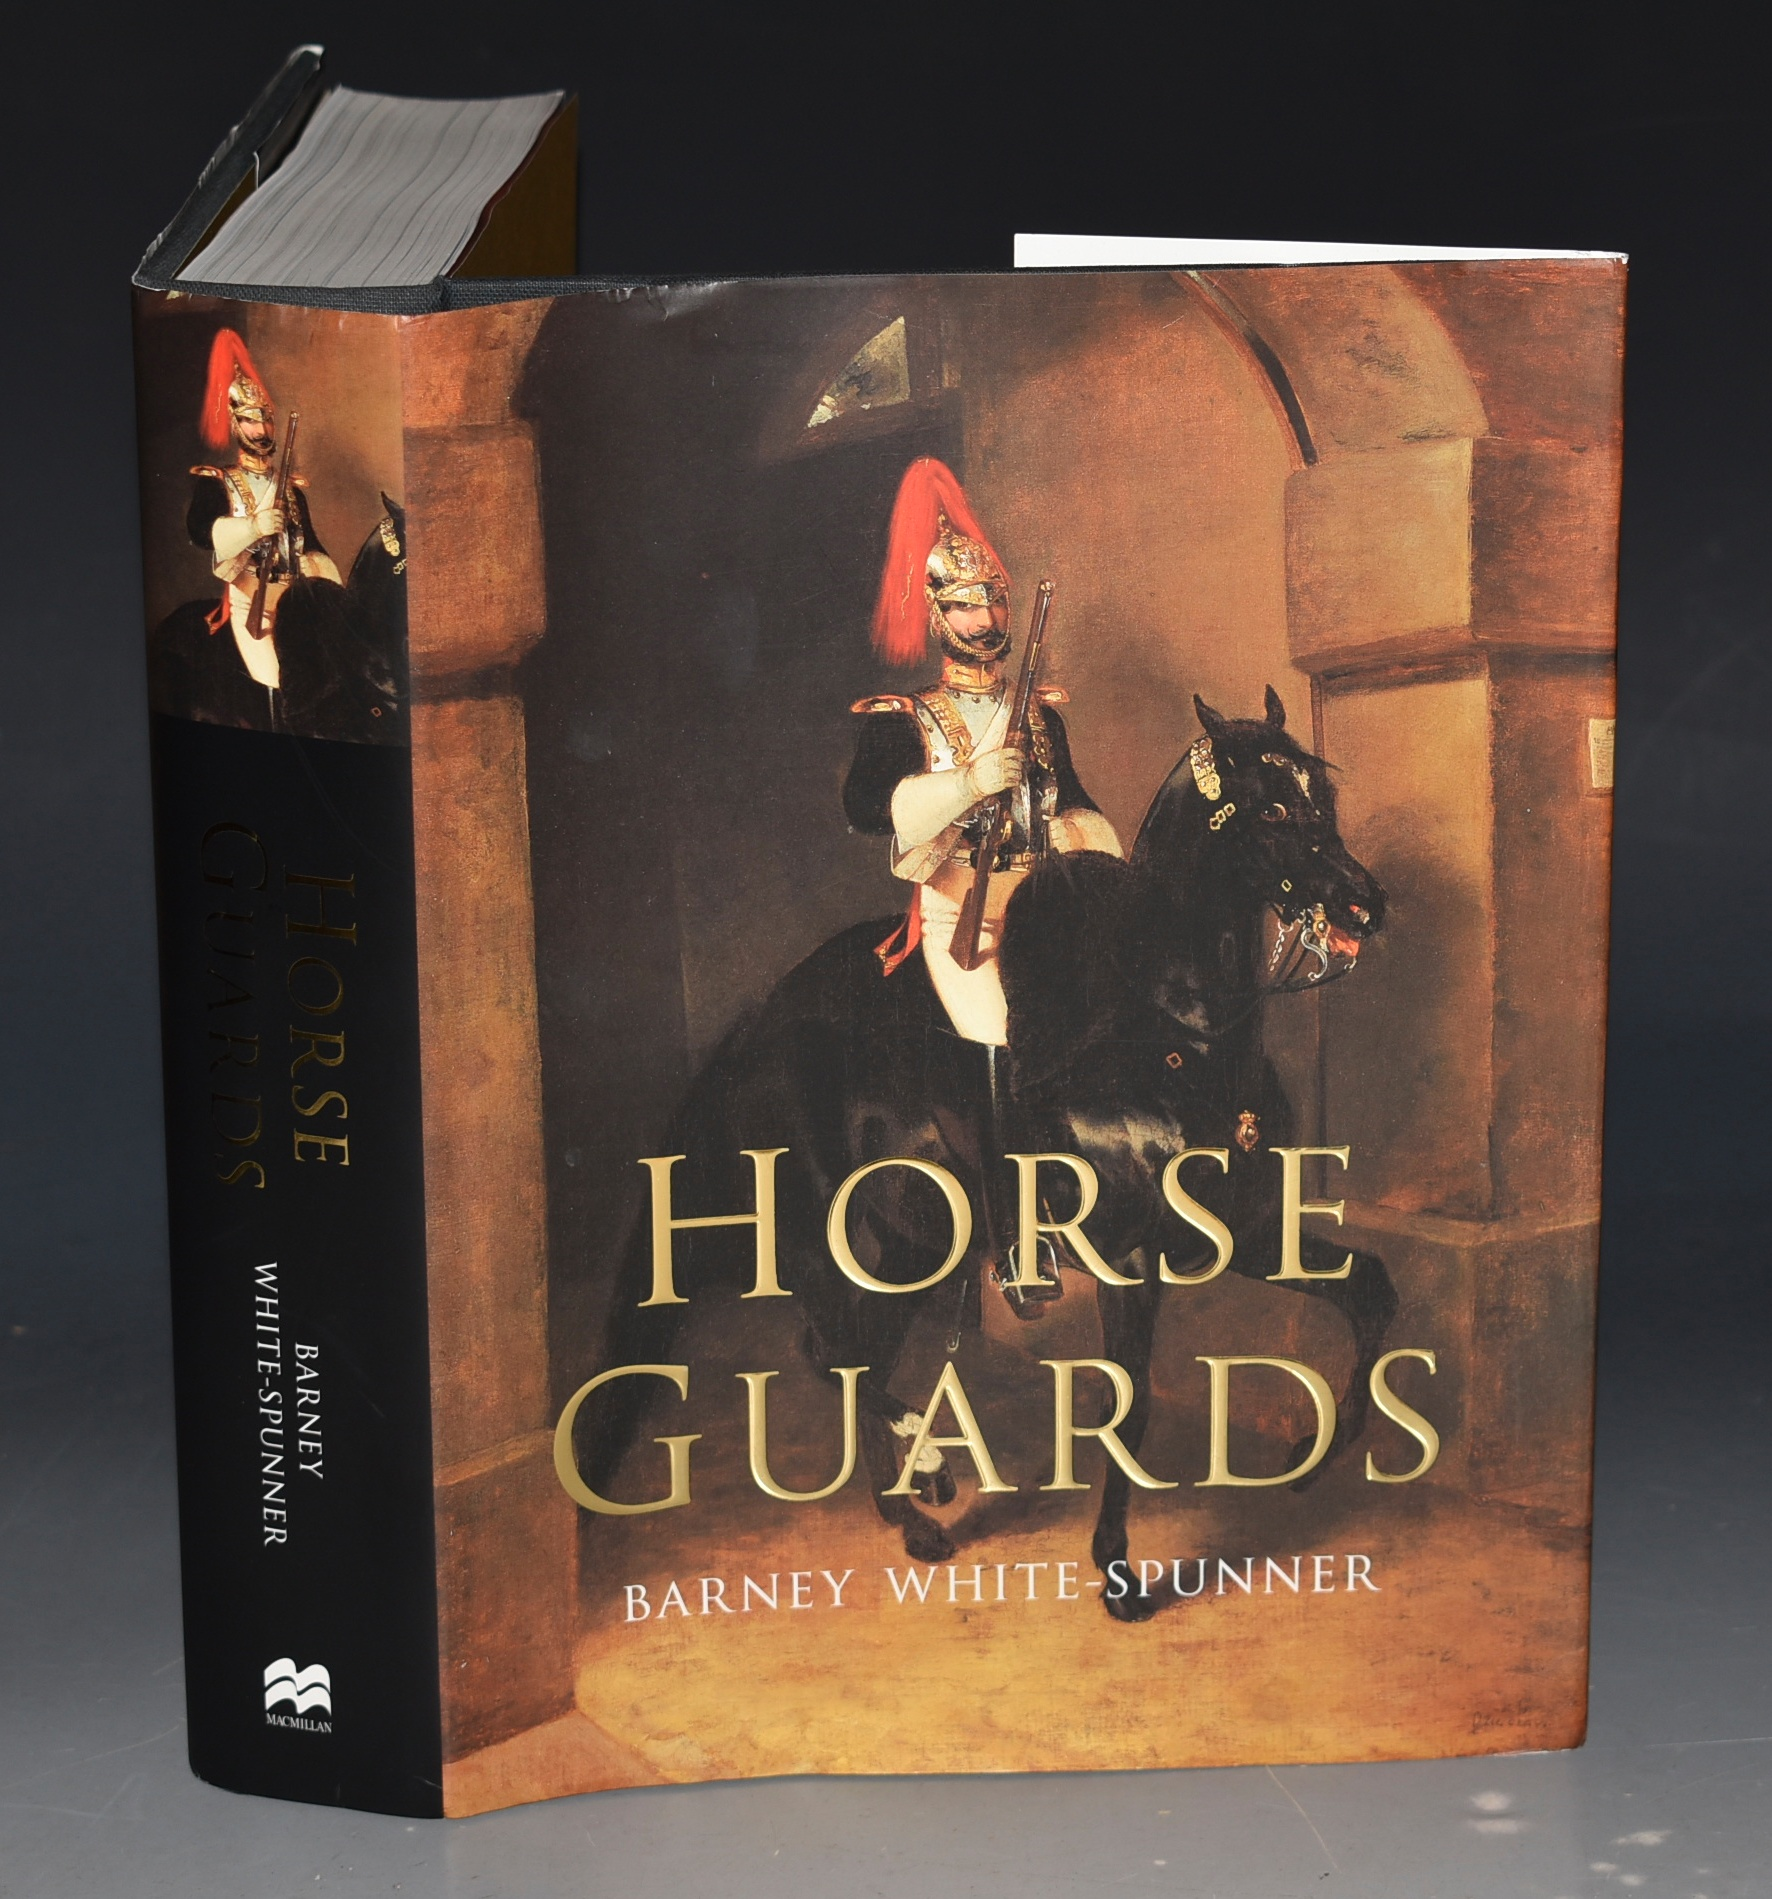 Image for Horse Guards. Pictures researched by Sarah Jackson and Annabel Merullo.